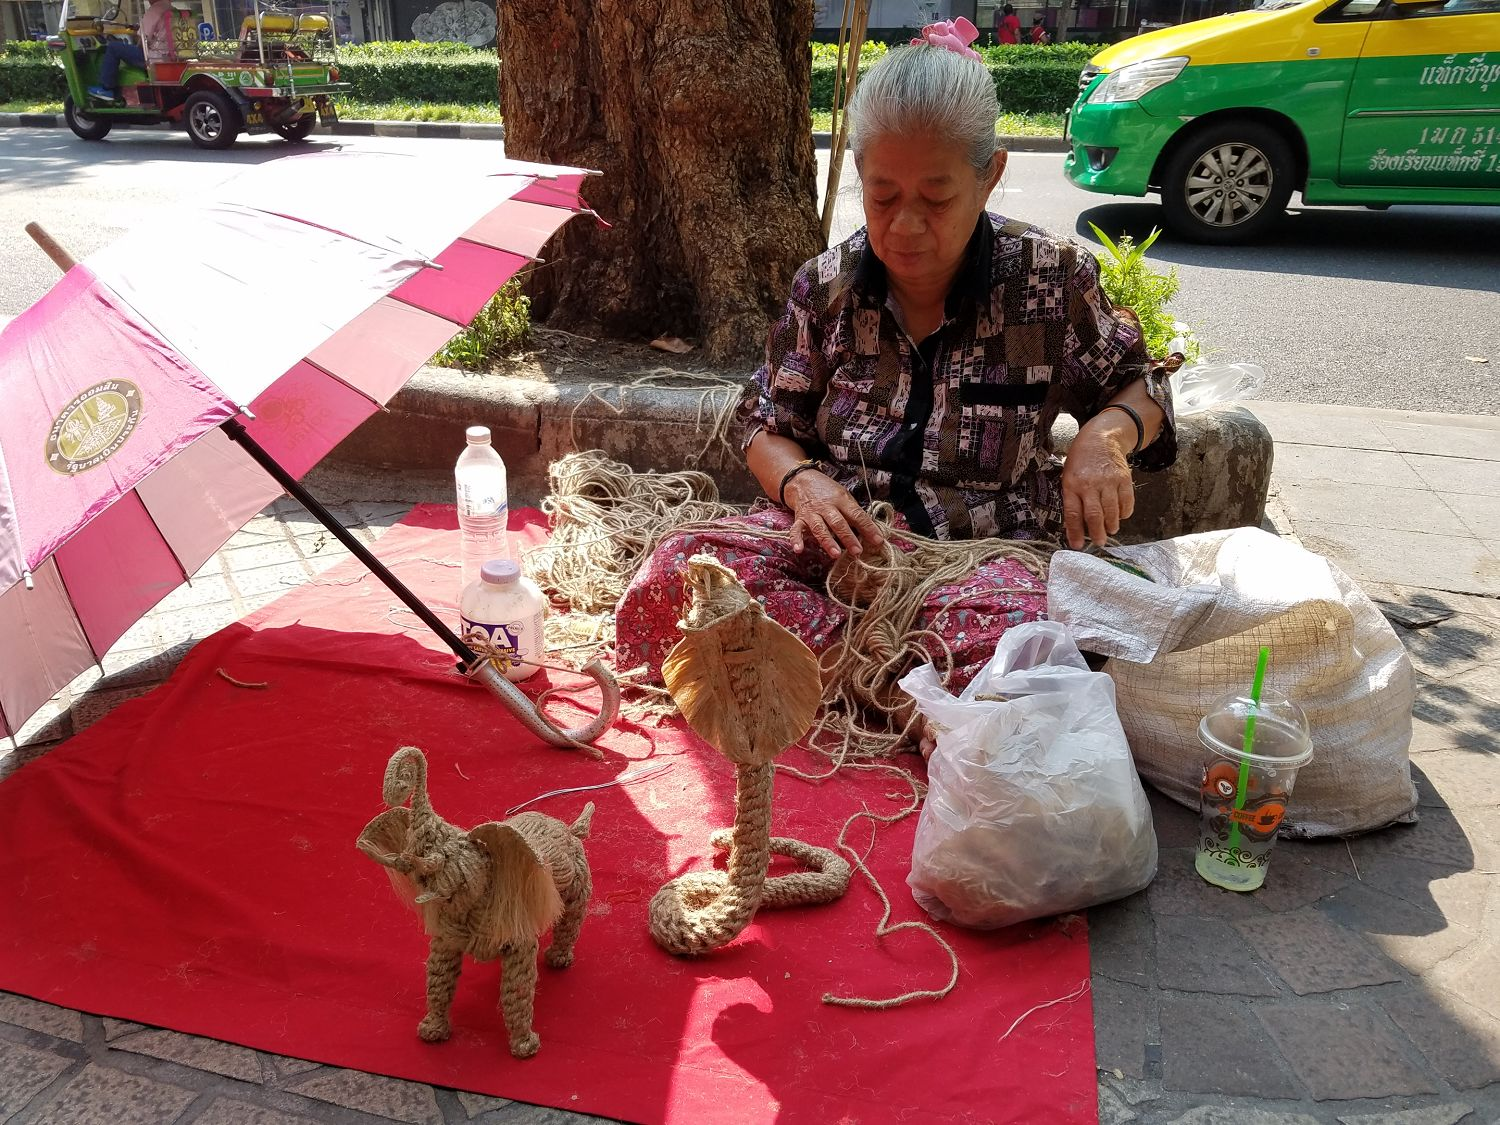 This lady made sculptures from string... what a creative idea!